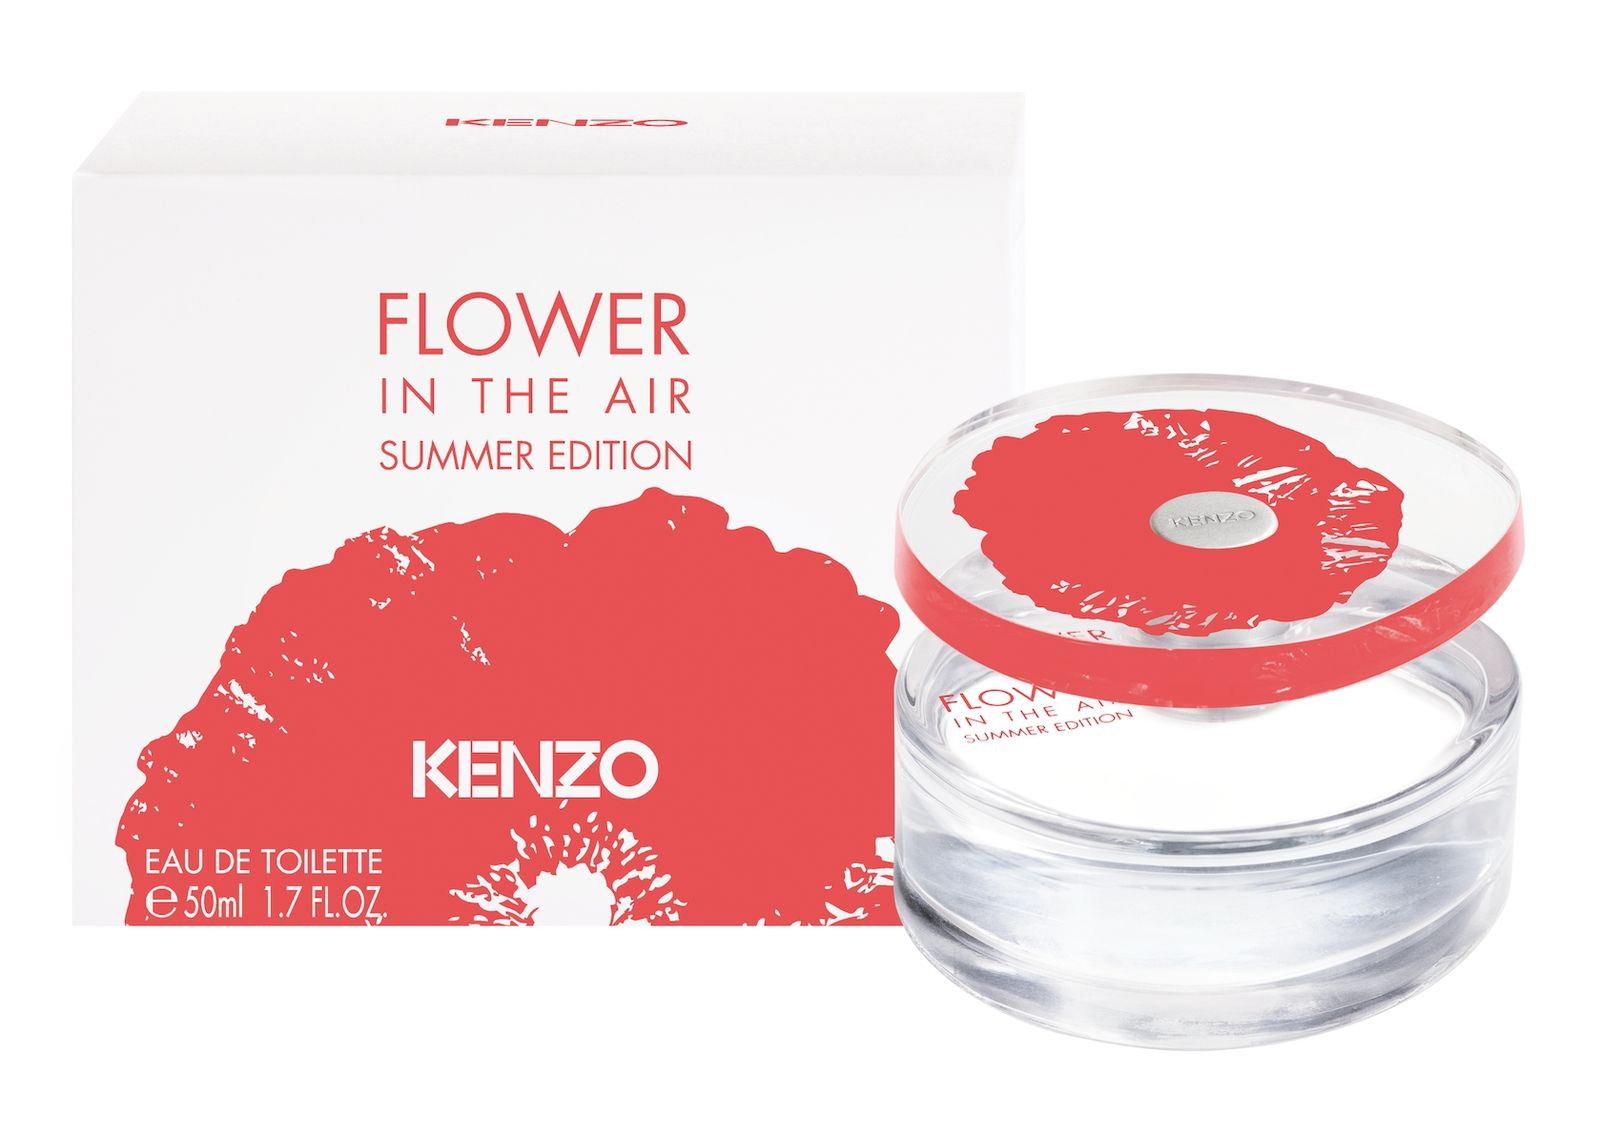 Flower in the Air Summer Edition Kenzo perfume a new fragrance for women 2015